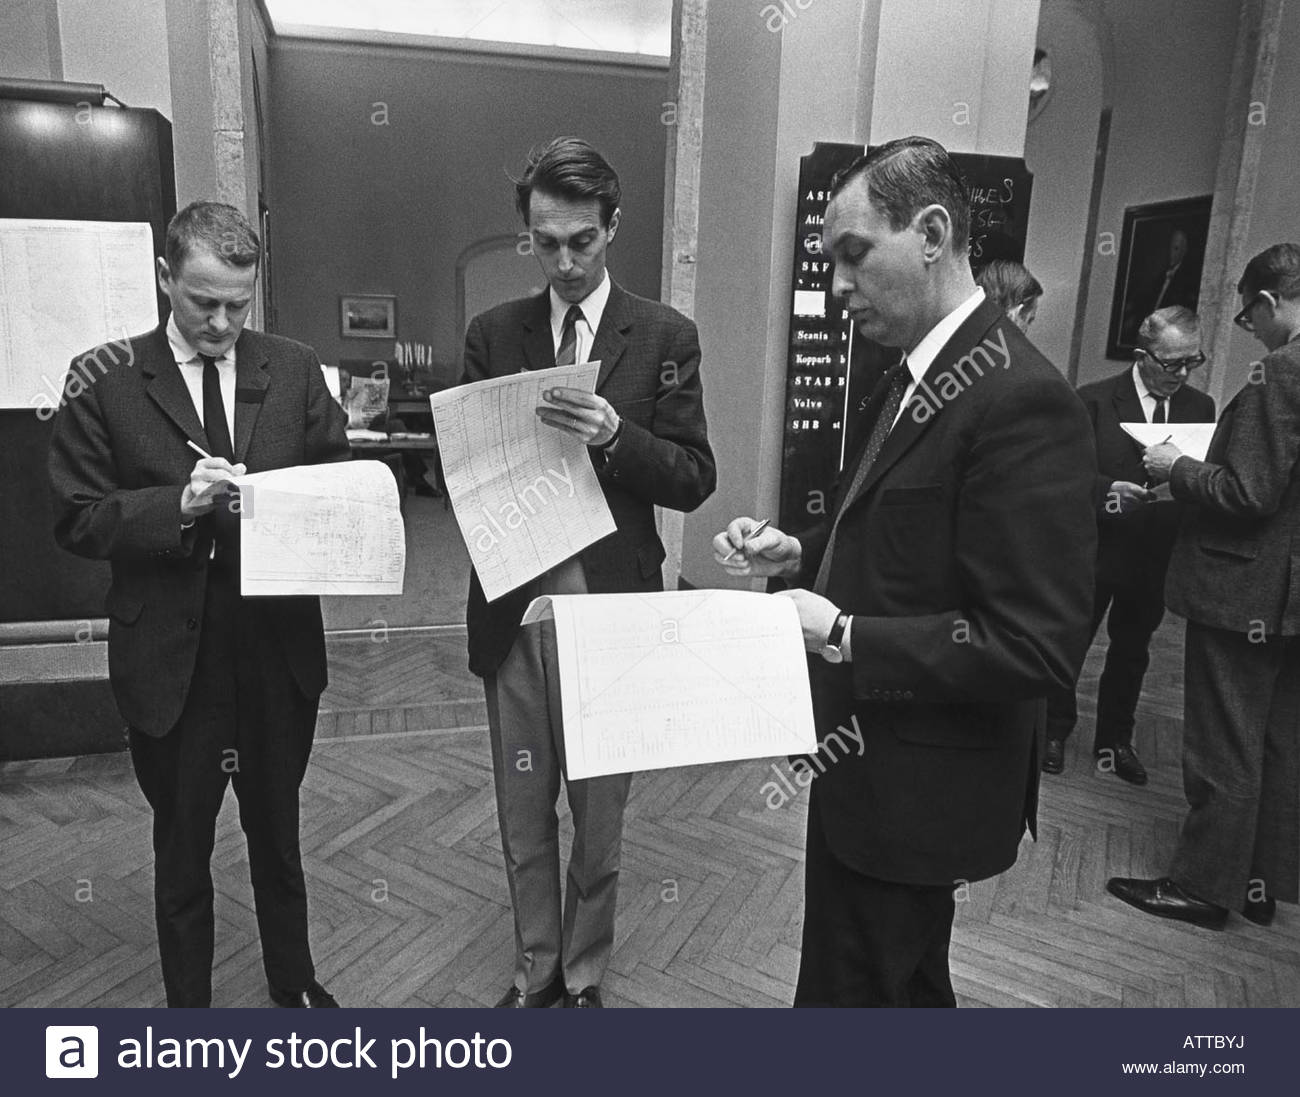 A small group of professionals writting on paper while standing - Stock Image